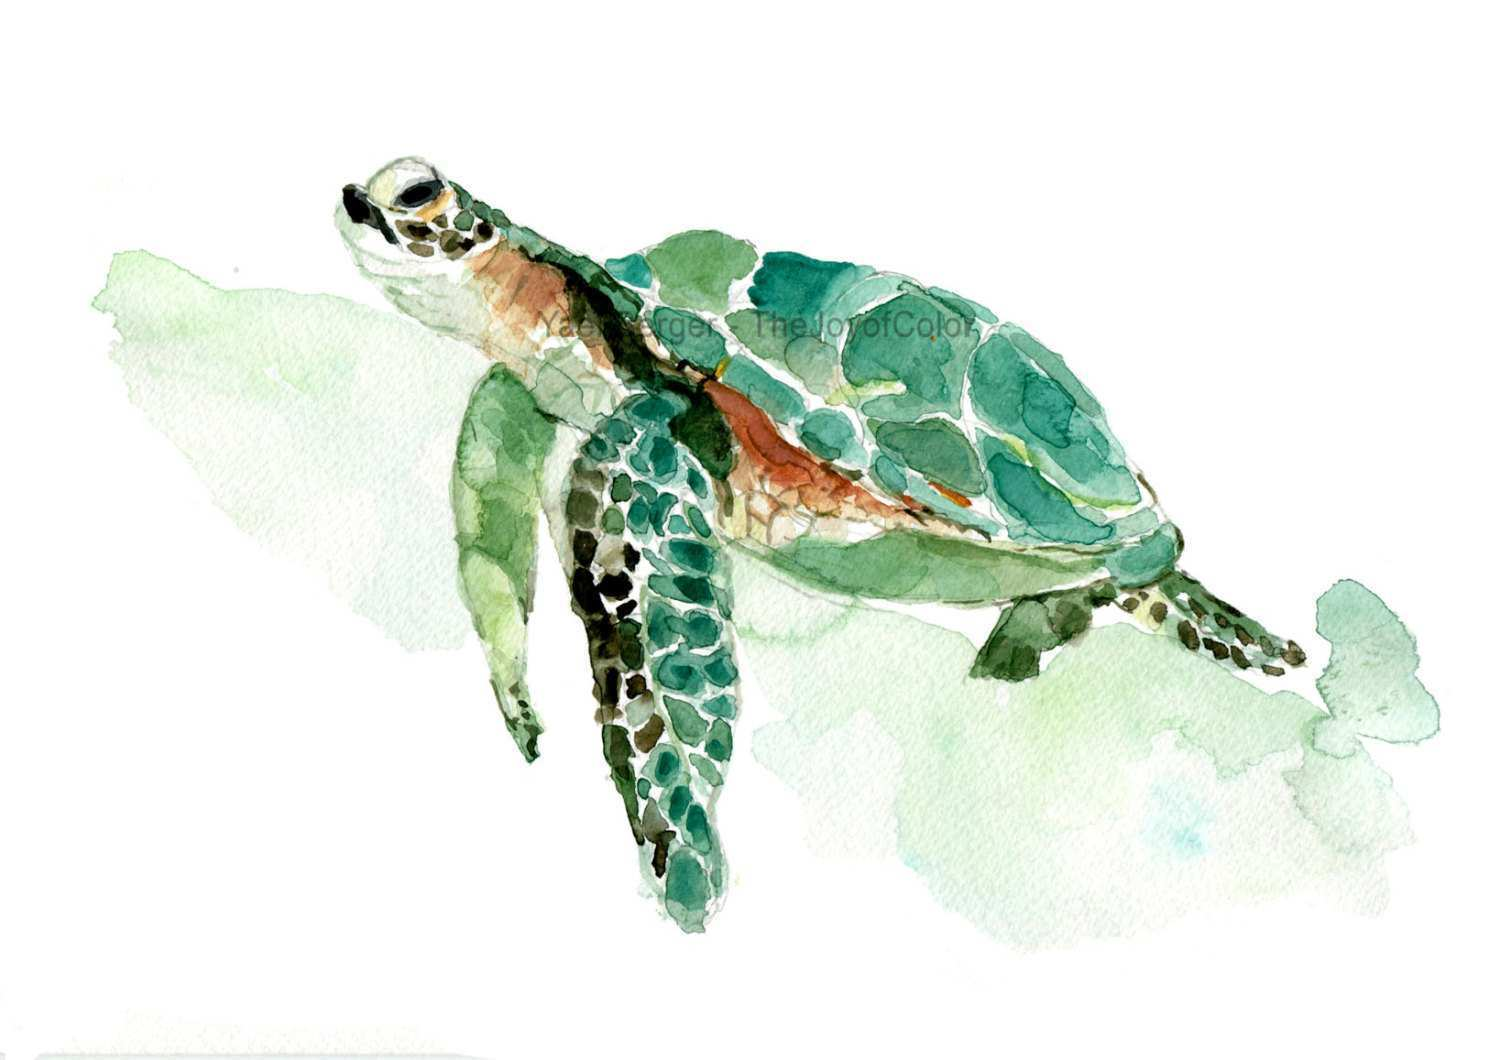 1500x1060 Turtle Painting Fresh Sea Turtle Watercolor Print Sea Turtle